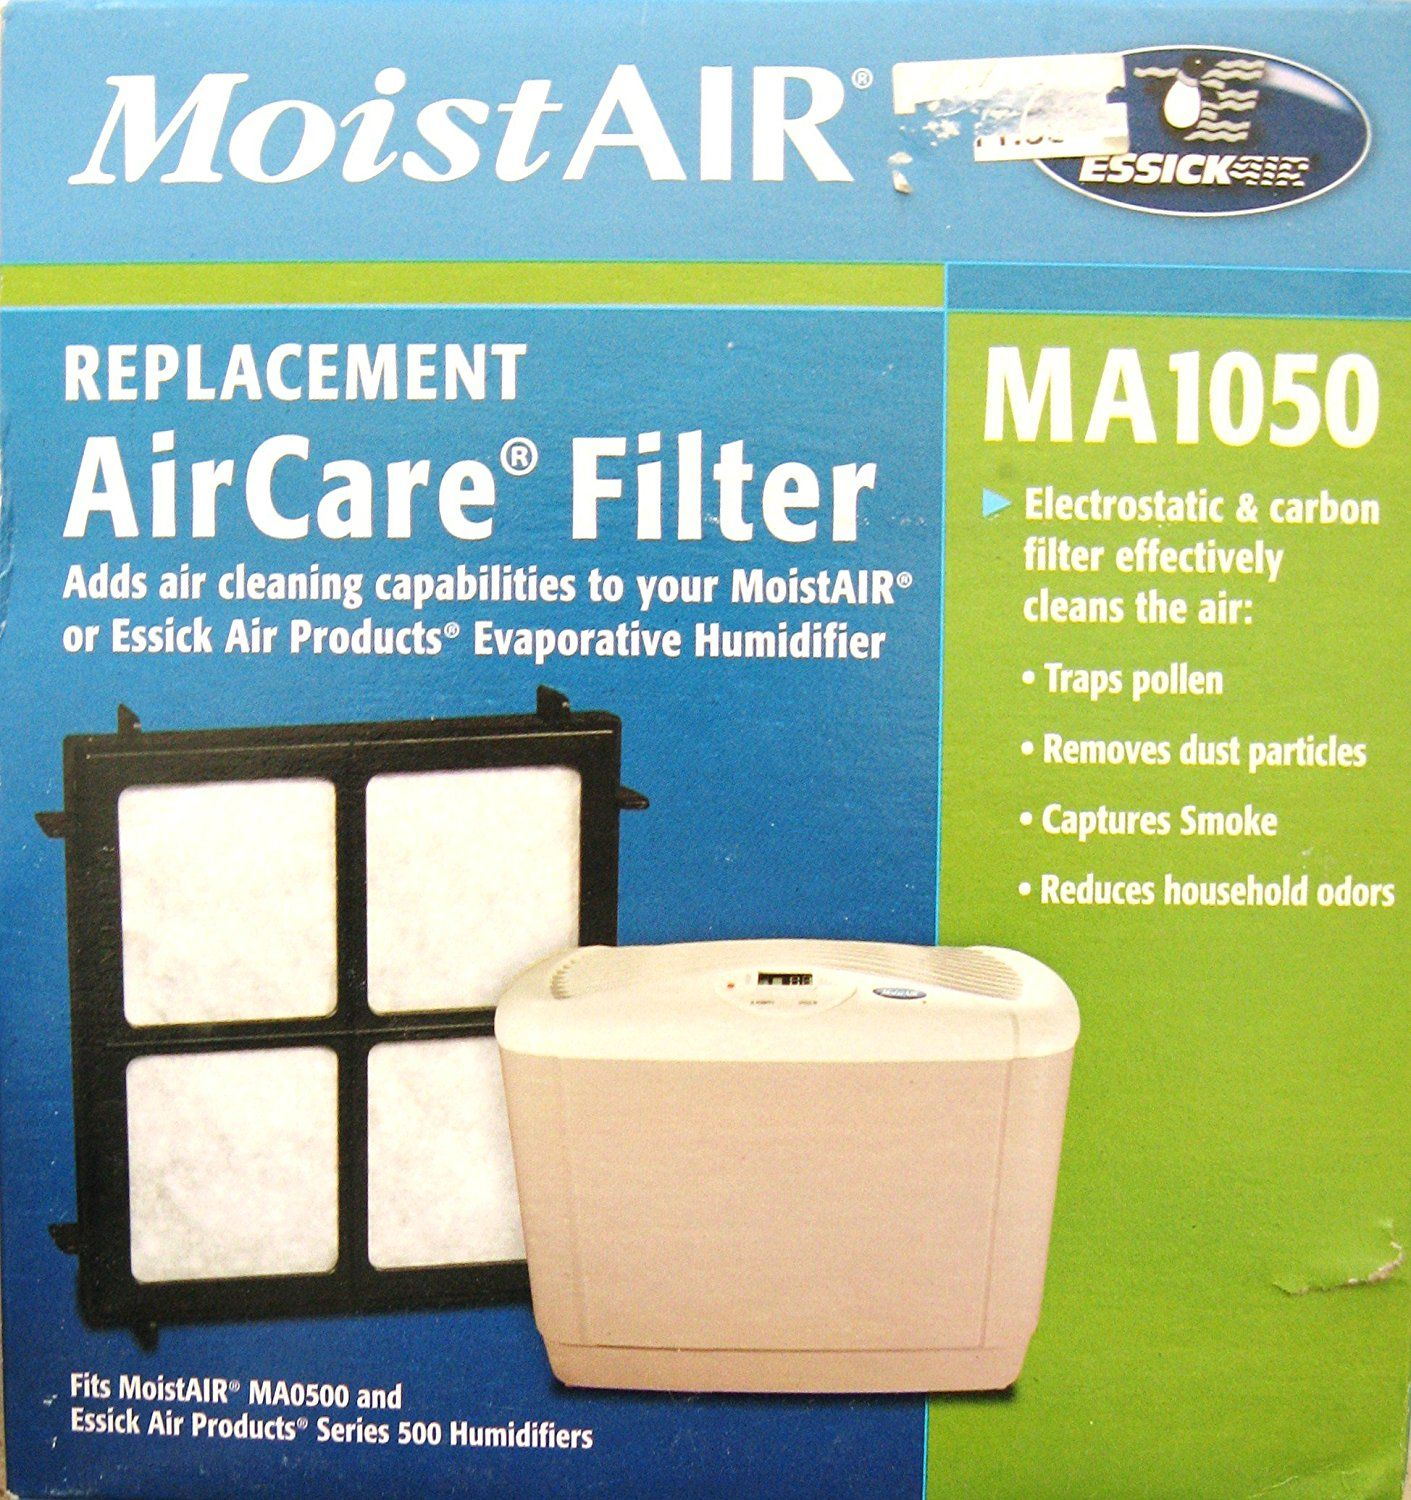 MoistAIR Replacement AirCare Filter fits MA0500 and Essick